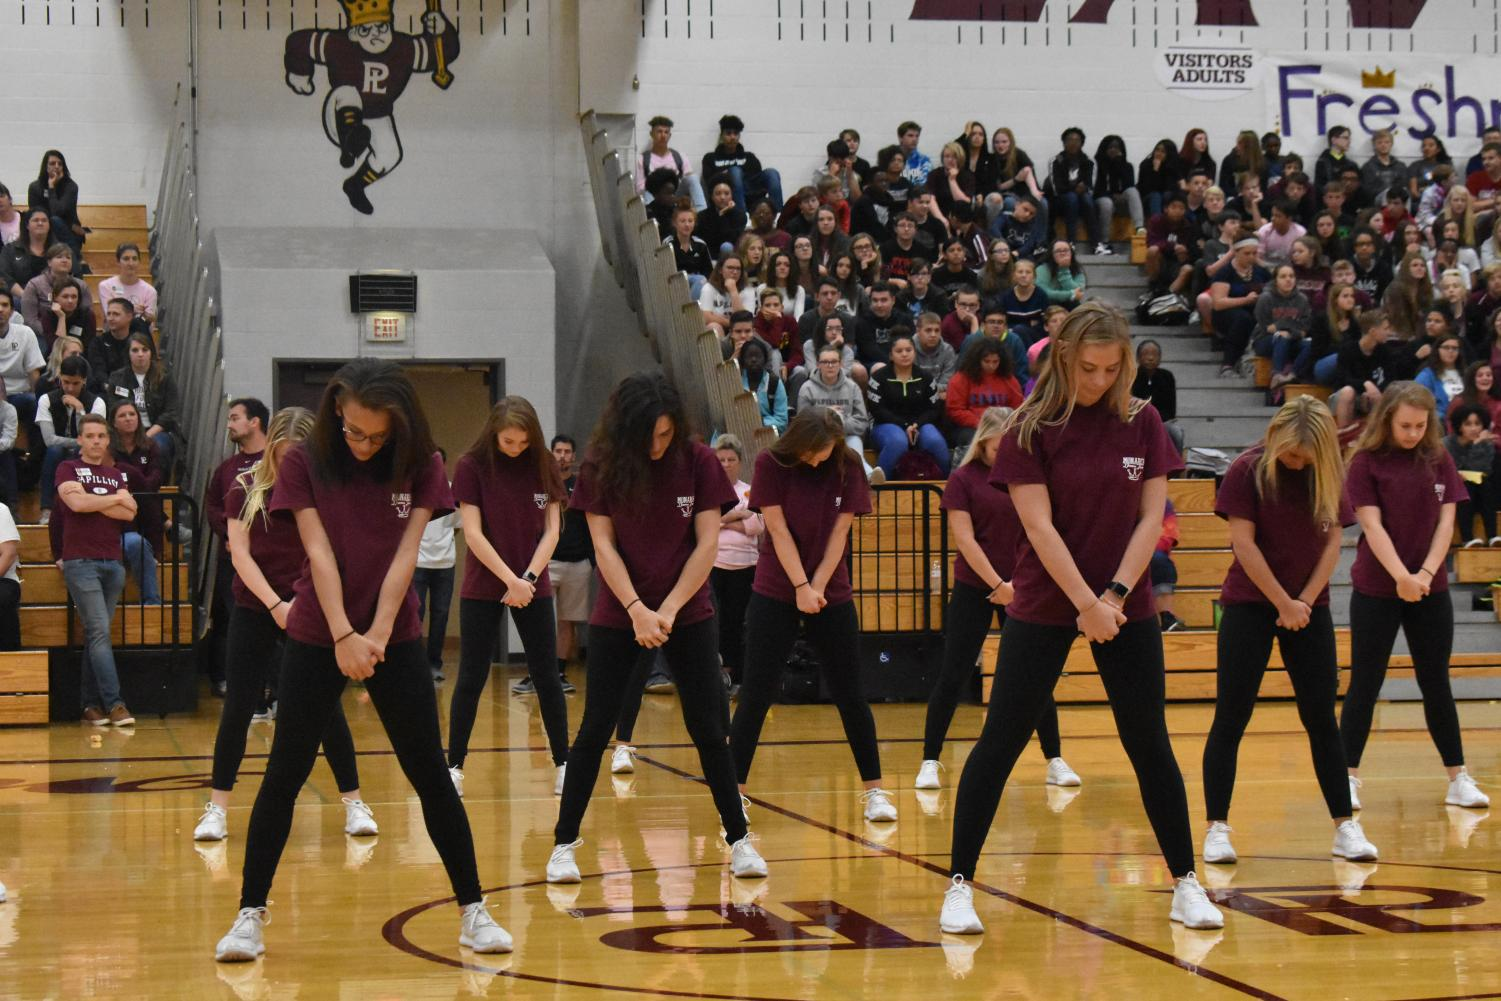 Dance Team getting in stance for their performance at the Homecoming pep rally.